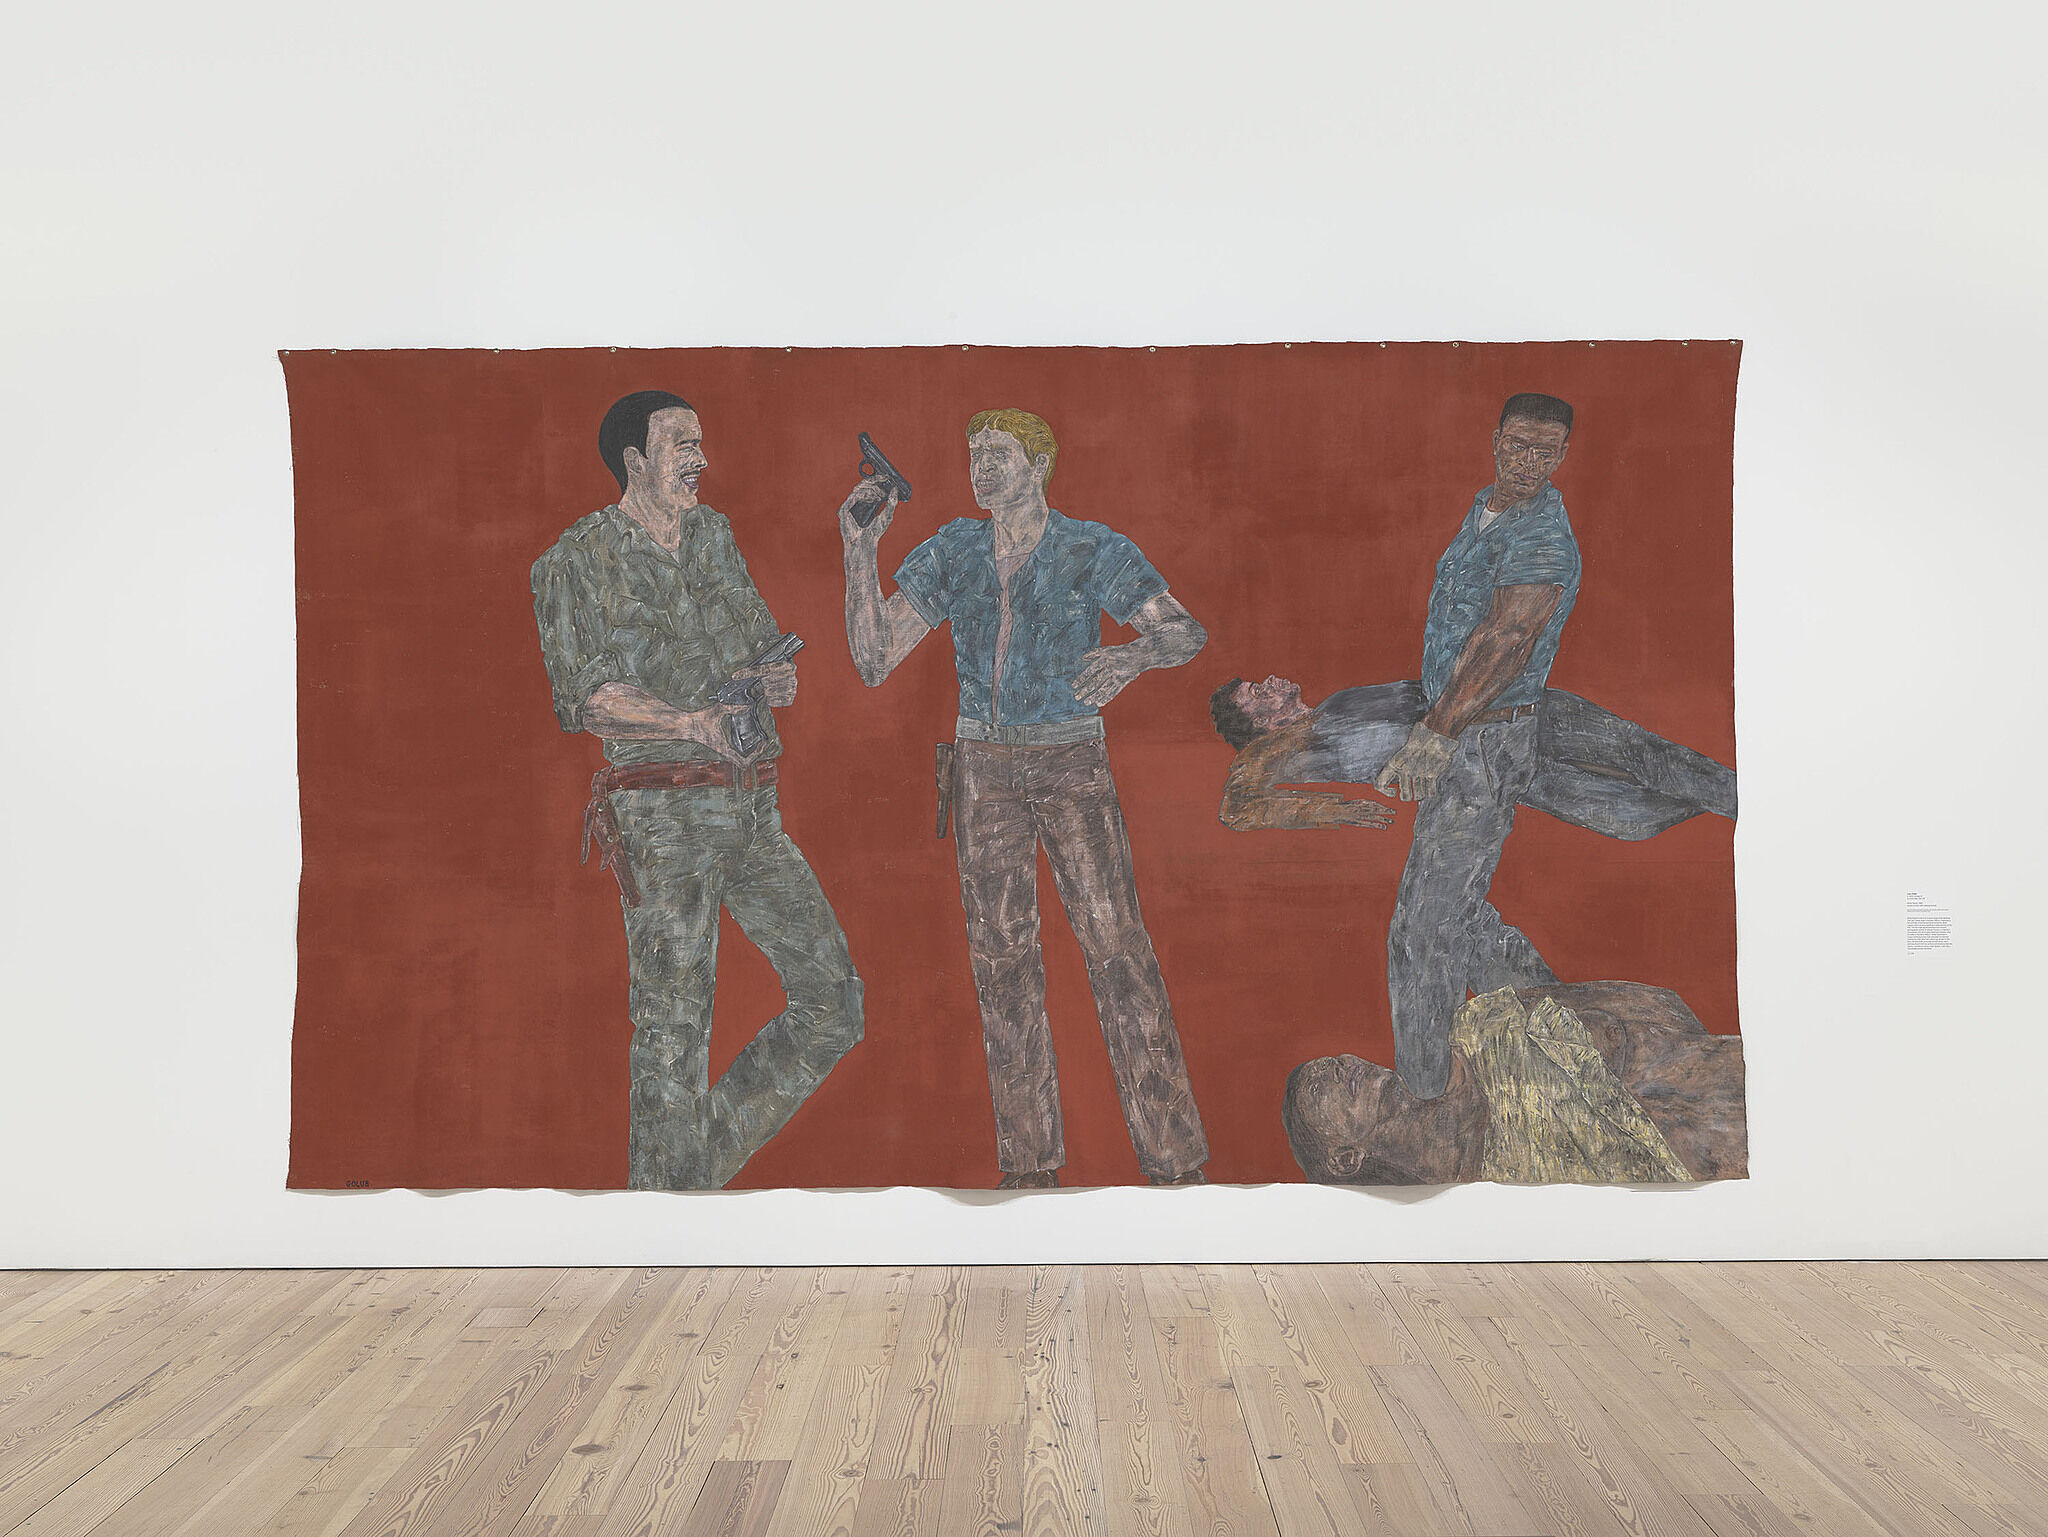 Large painting by Leon Golub of police oficers.